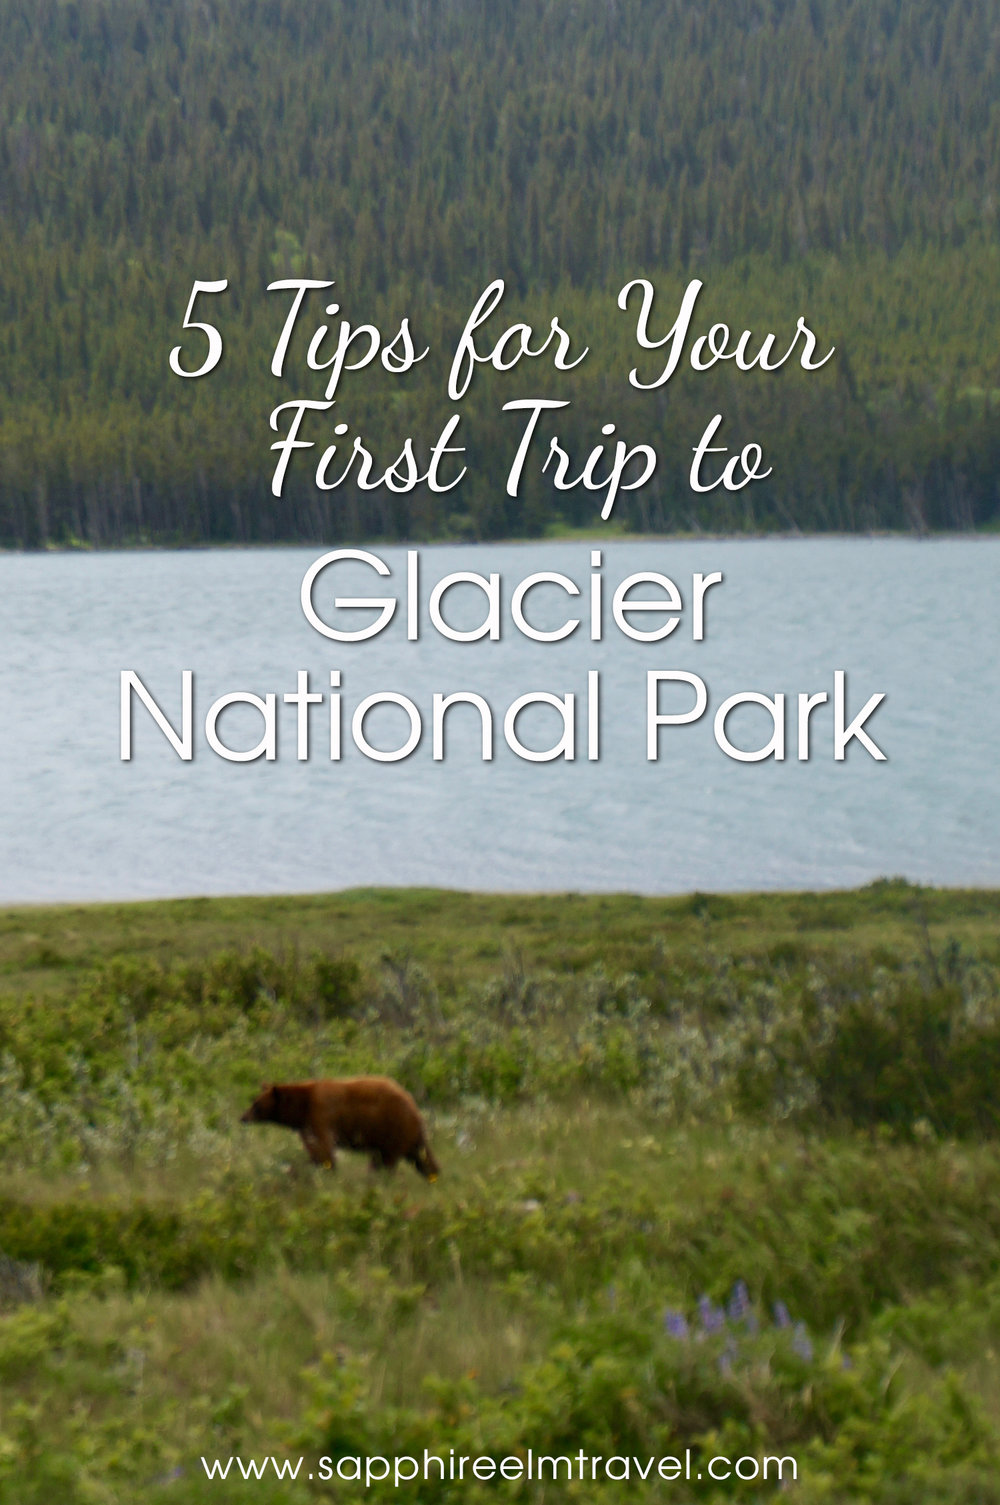 Glacier National Park tips bear